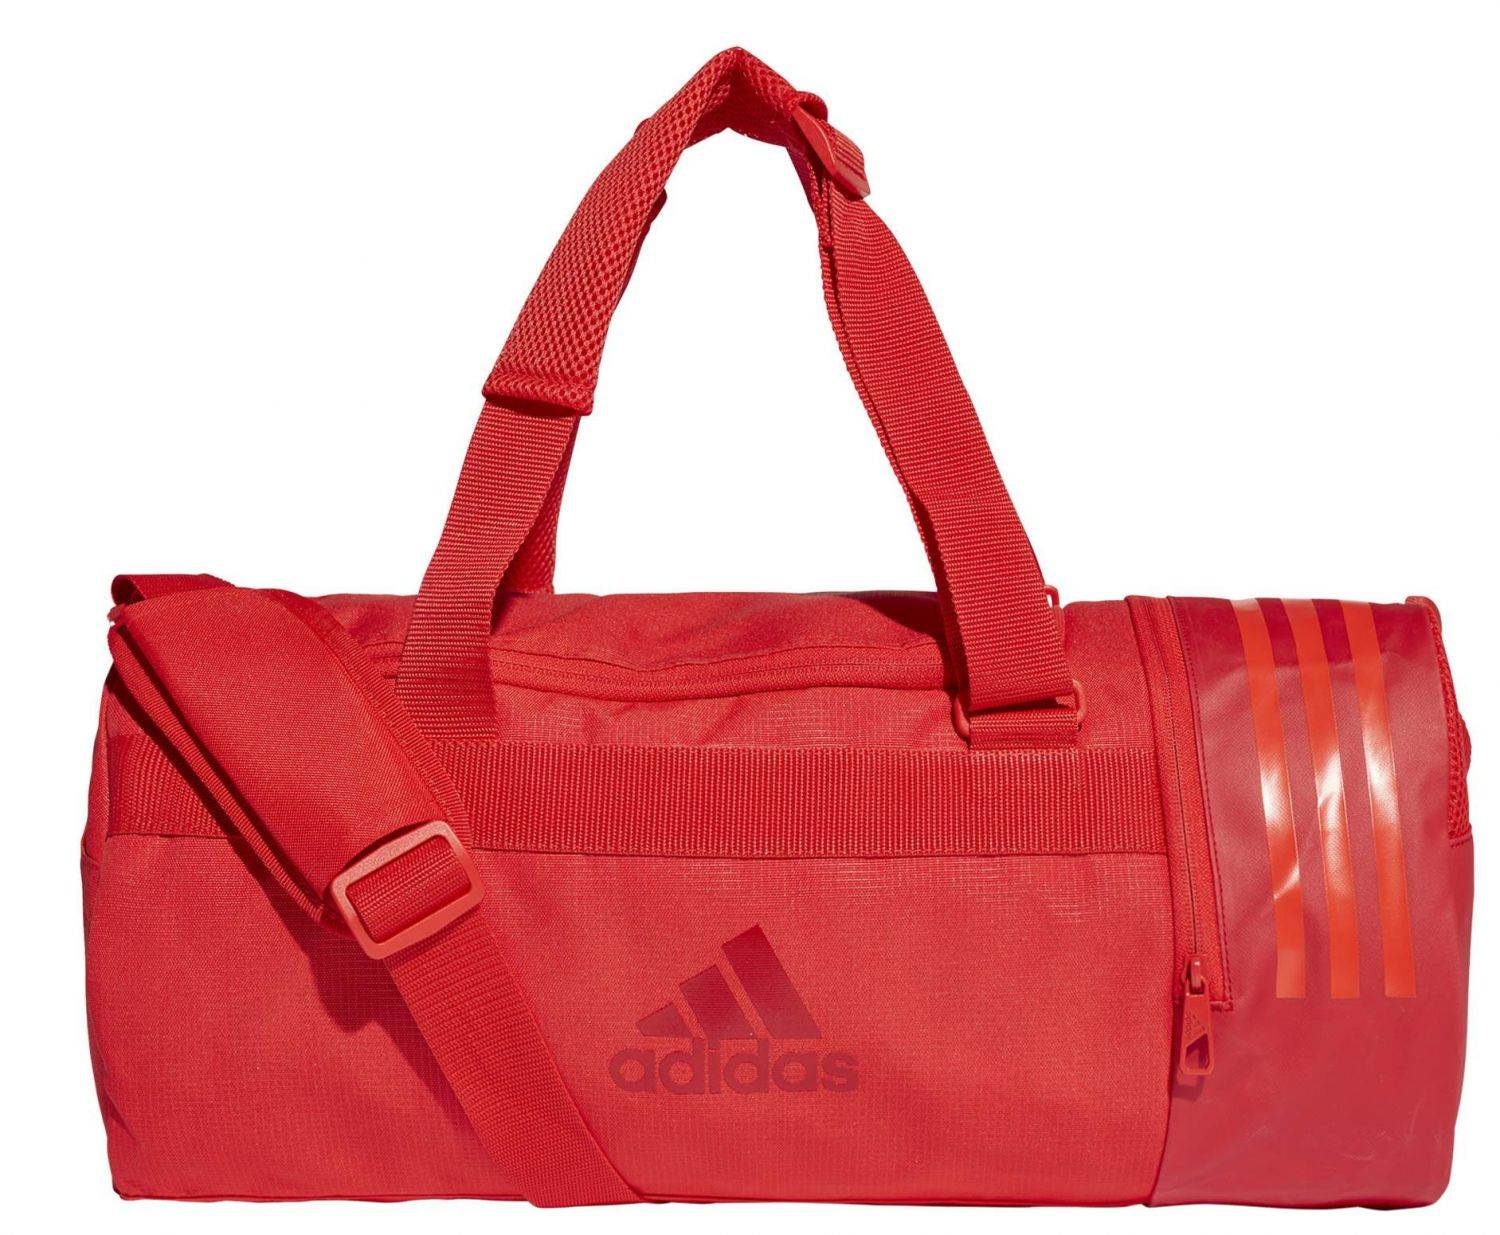 adidas-convertible-duffelbag-s-tasche-farbe-hirere-hirere-scarlet-